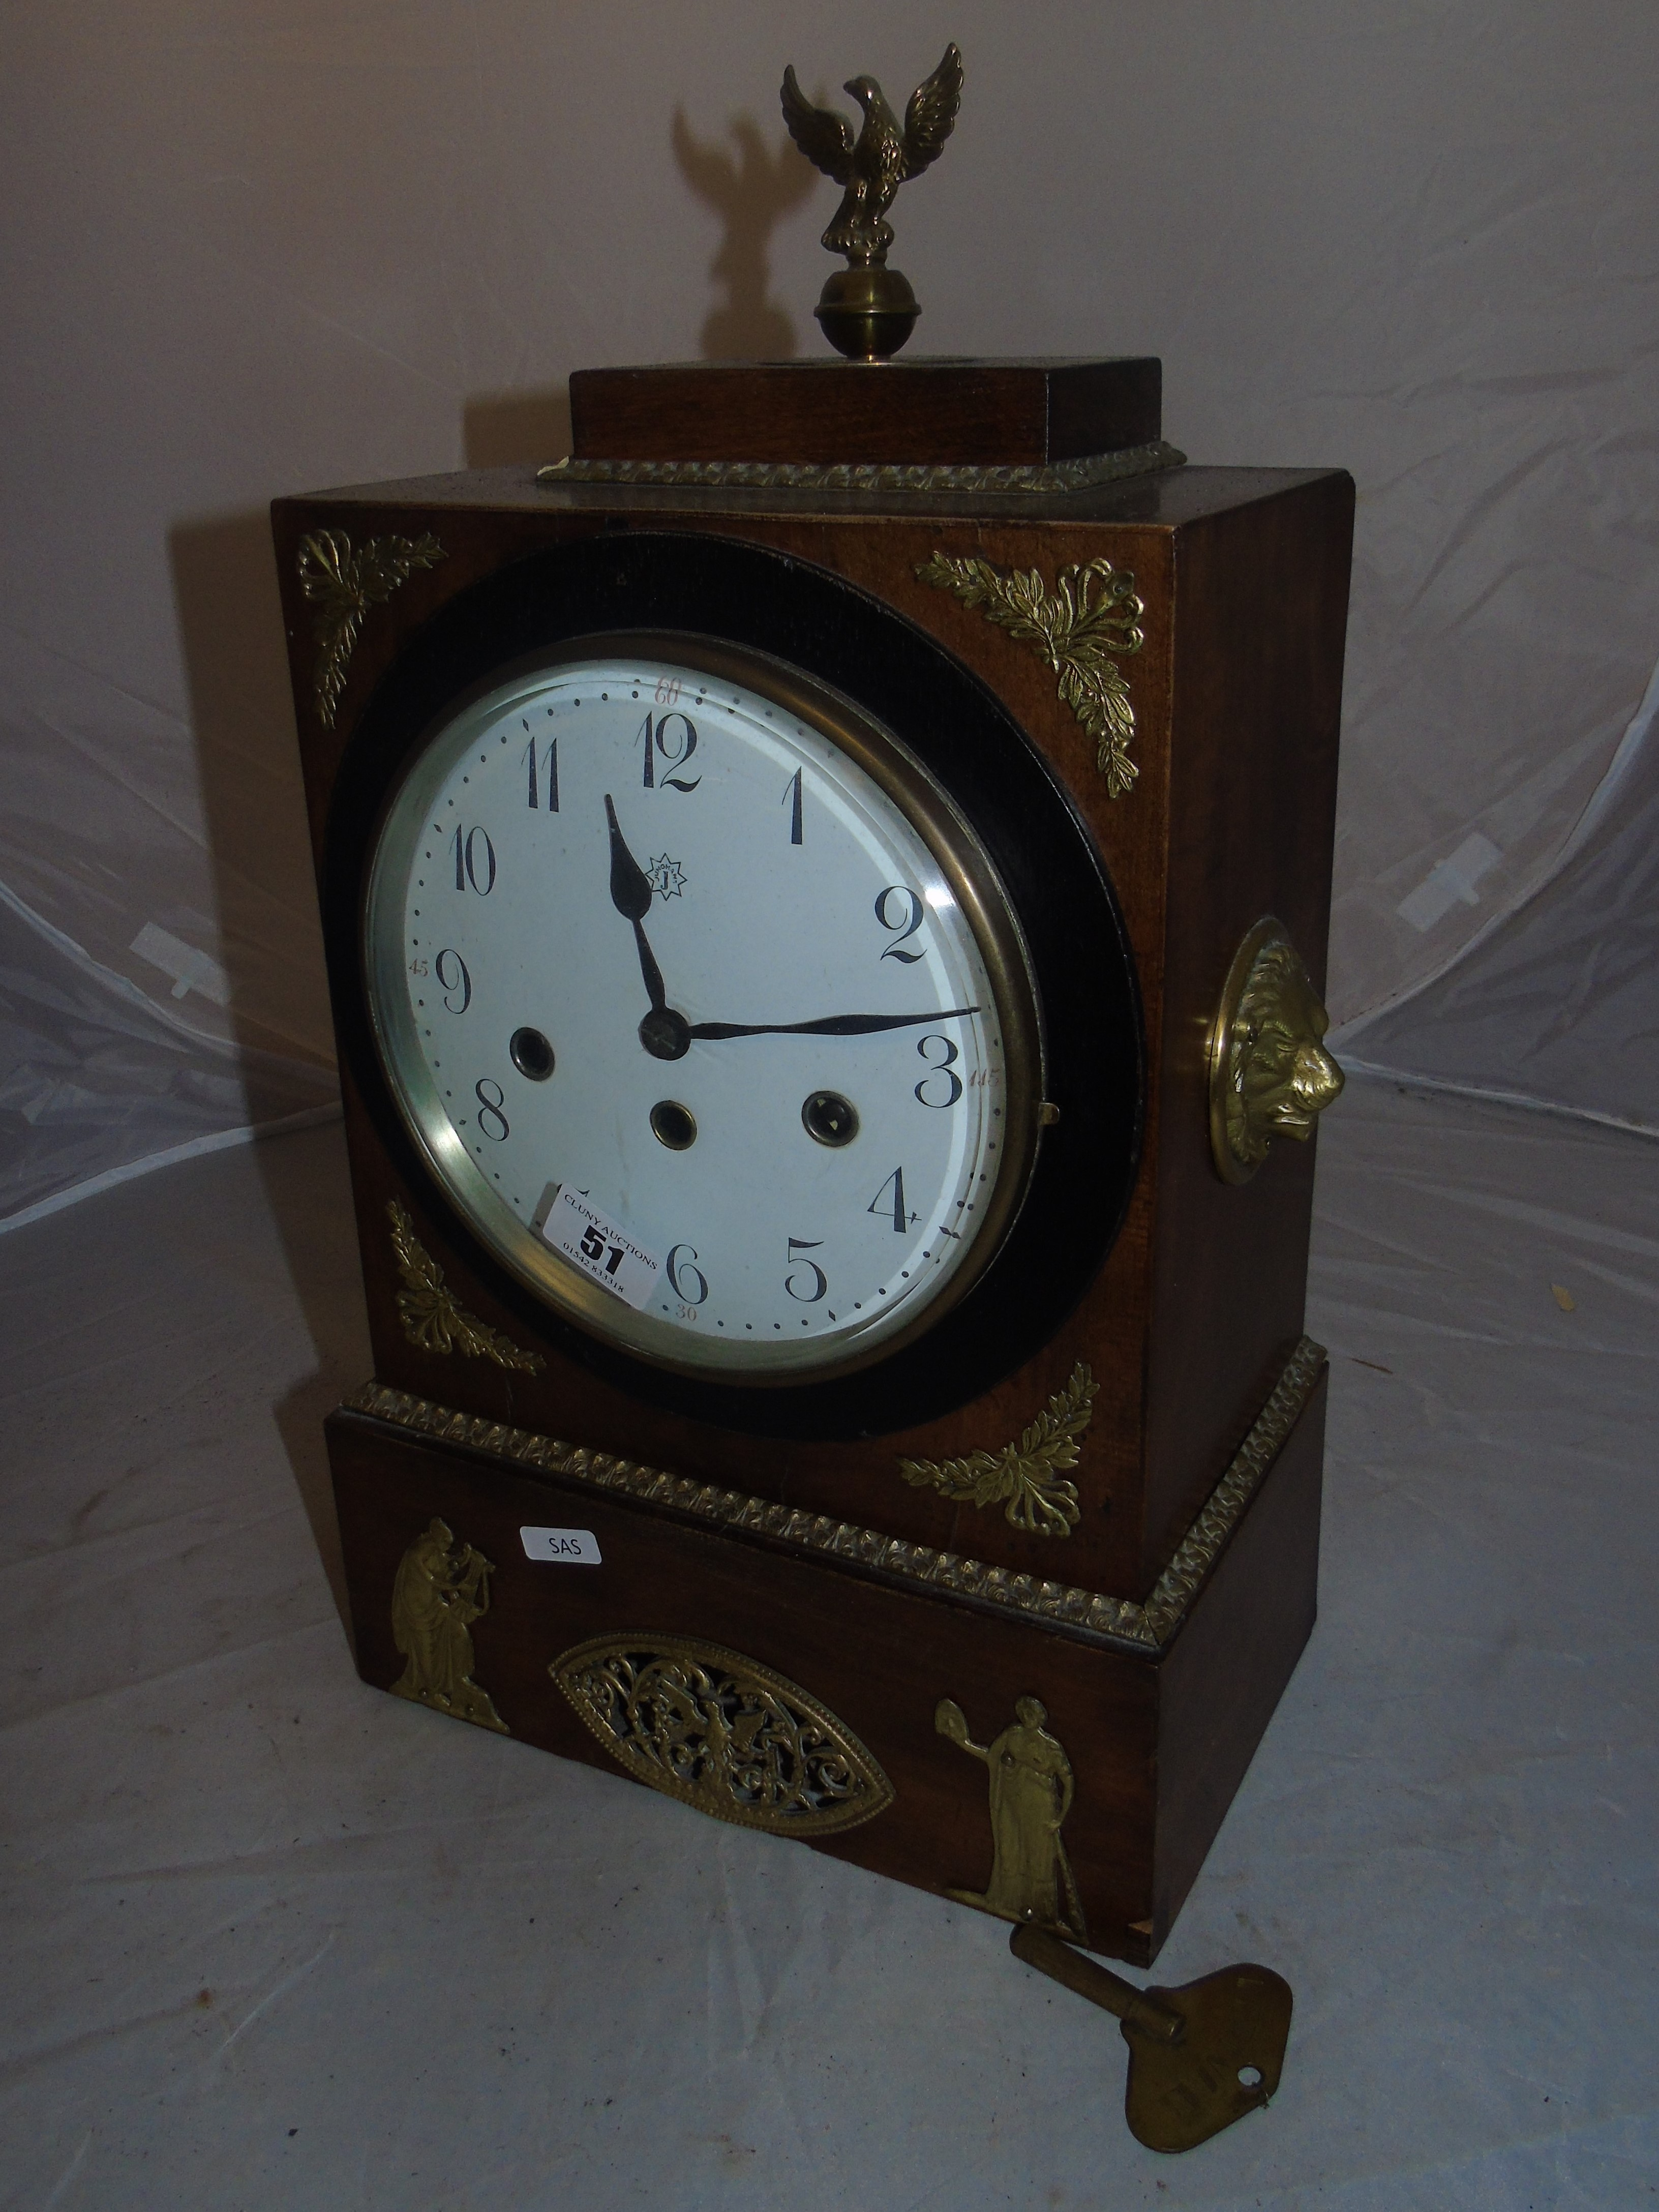 Lot 51 - JUNGHANS WALNUT MANTLE CLOCK. A CONVEX DIAL WITH BRASS MOUNTS .HANDLES & FINIAL 4 HAMMER WESTMINSTER